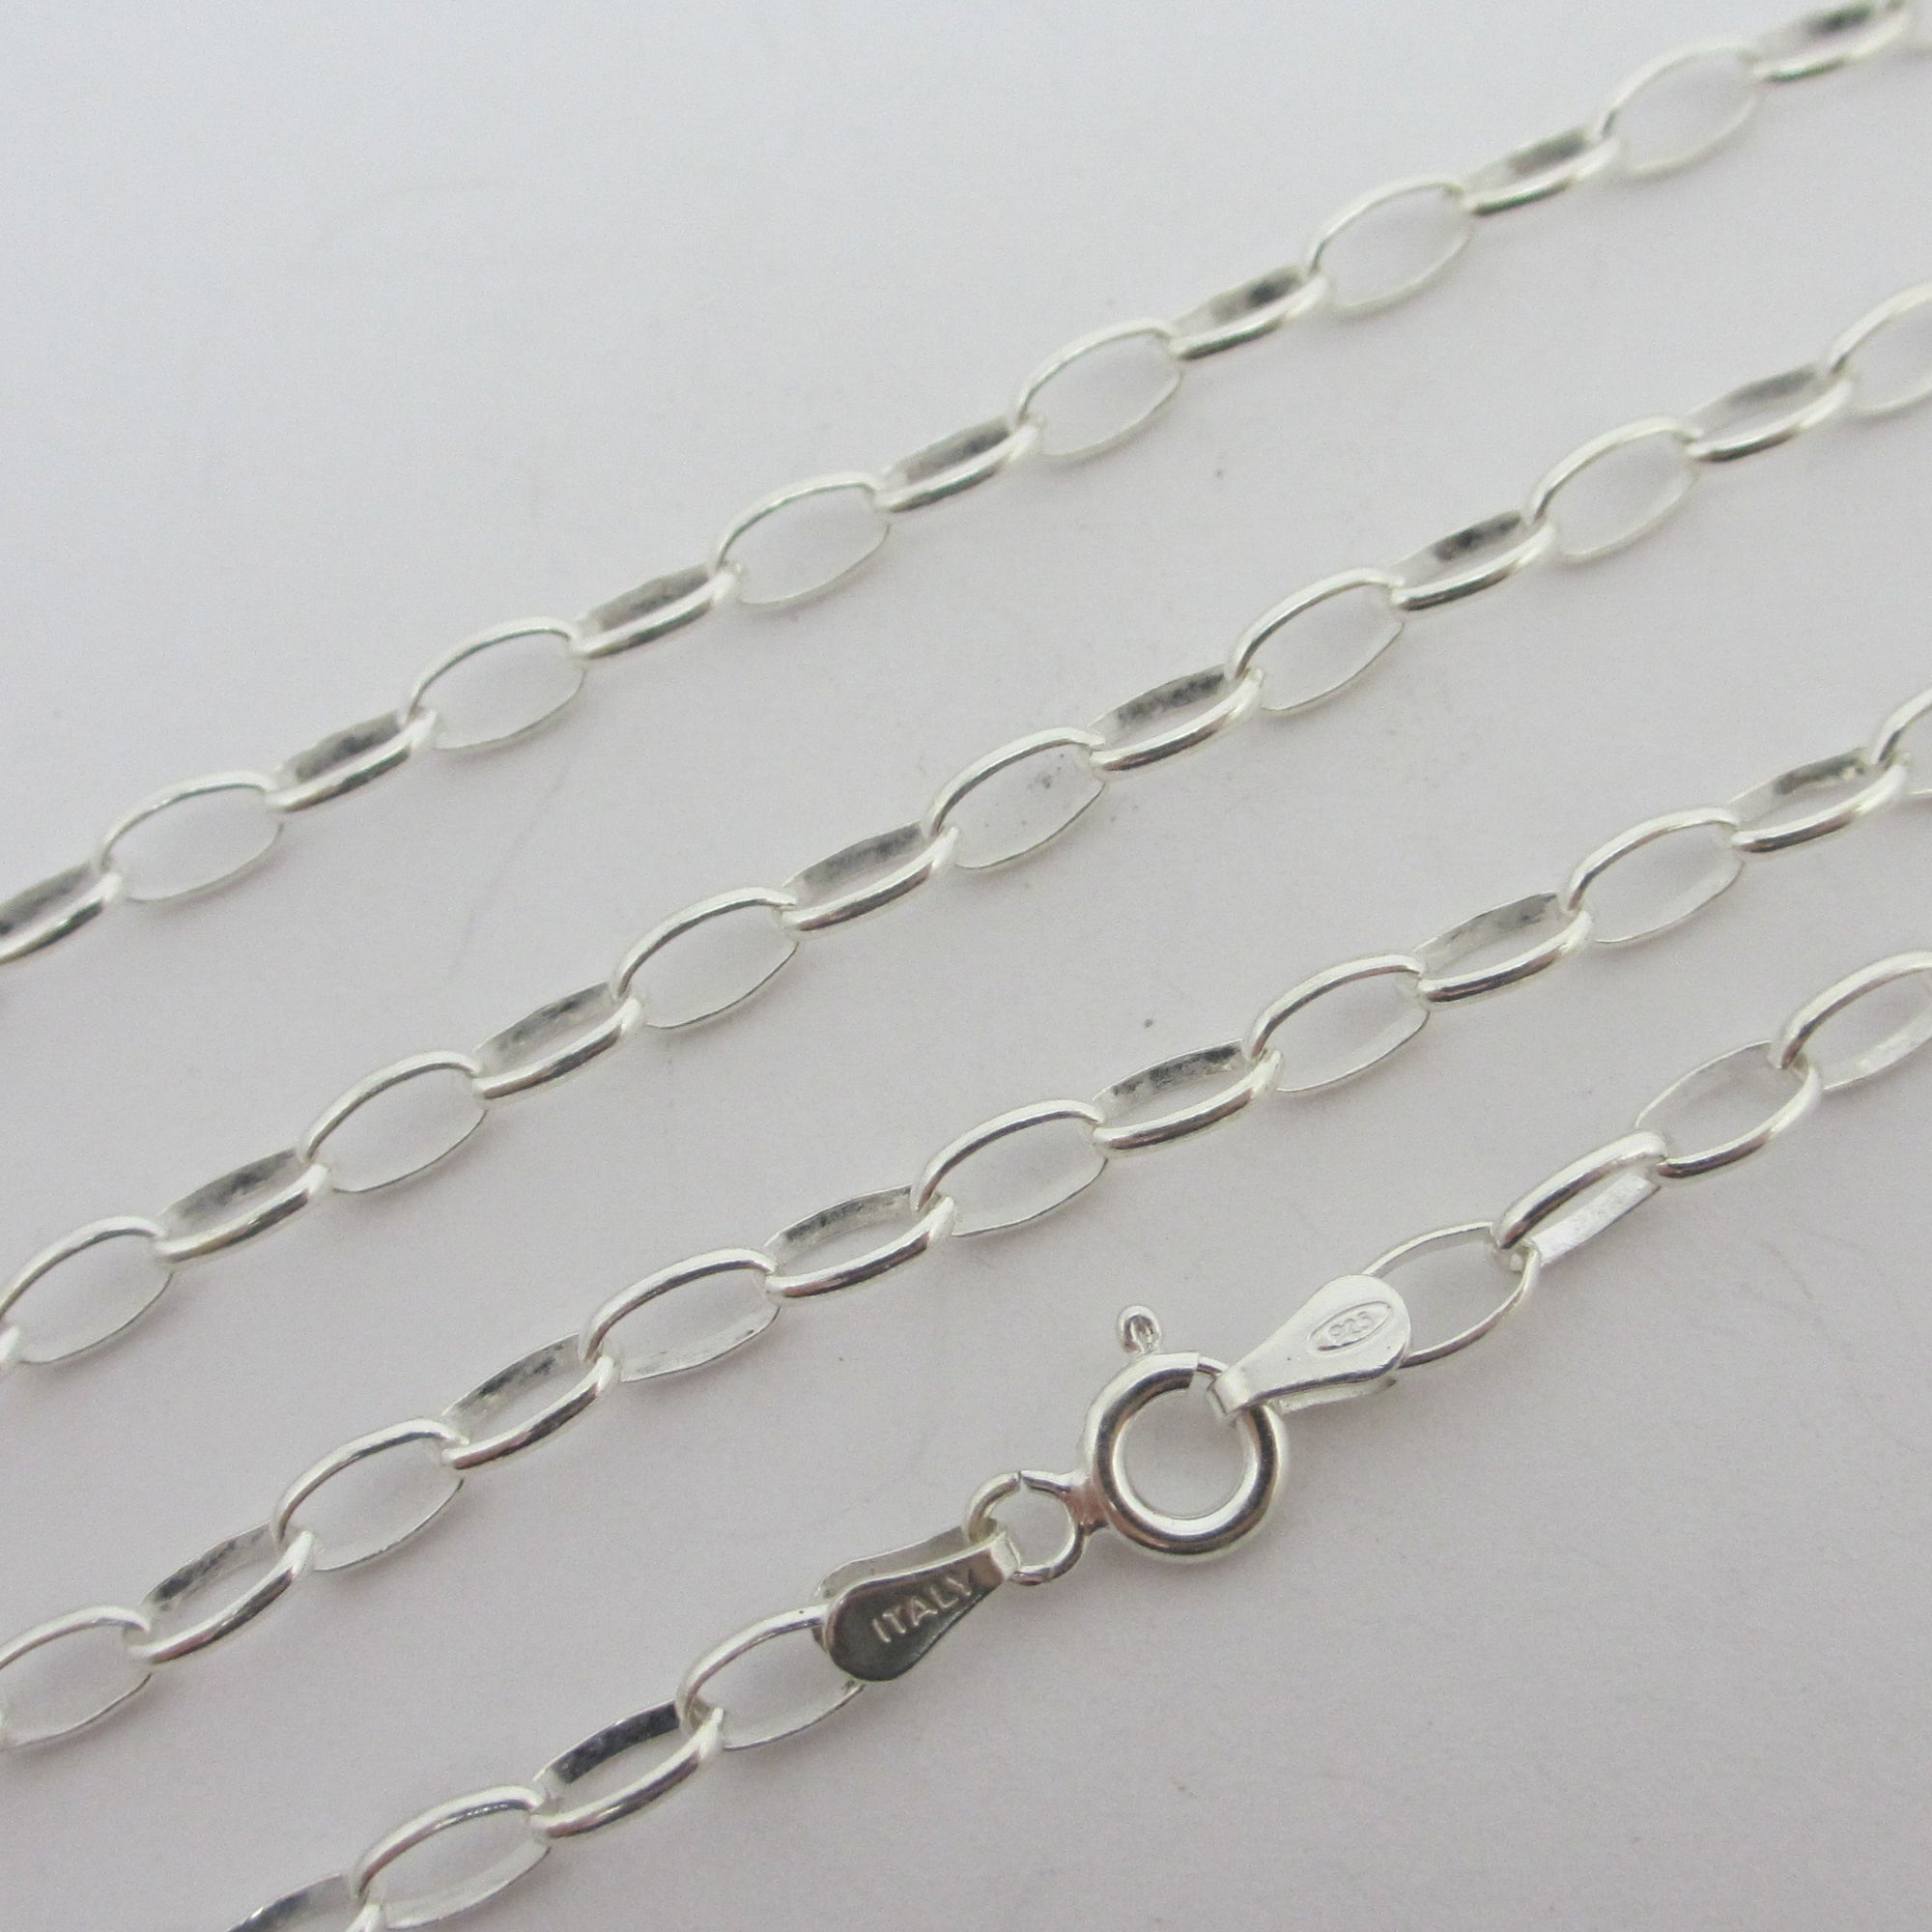 "Cable Link Sterling Silver Chain Necklace 55.4 cm / 21.8"" Vintage c1980"